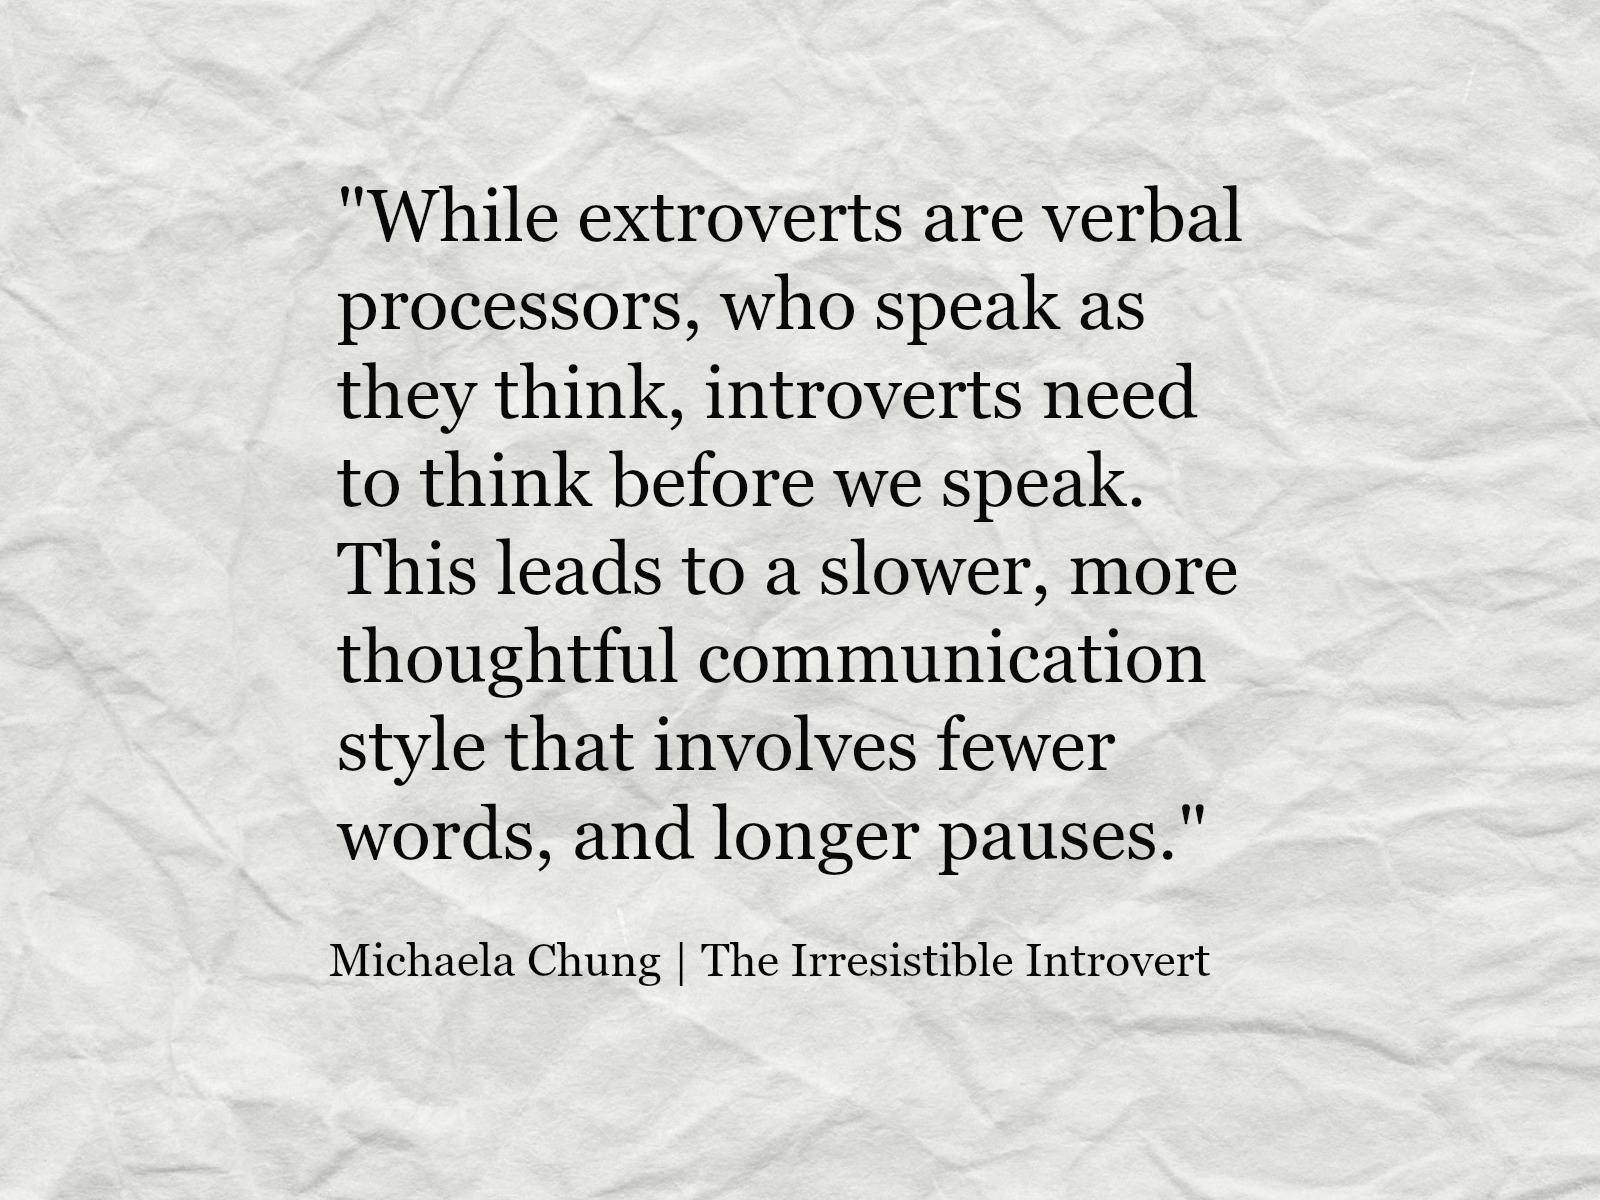 Quotes About Introverts Quotes And Sayings About Introversion